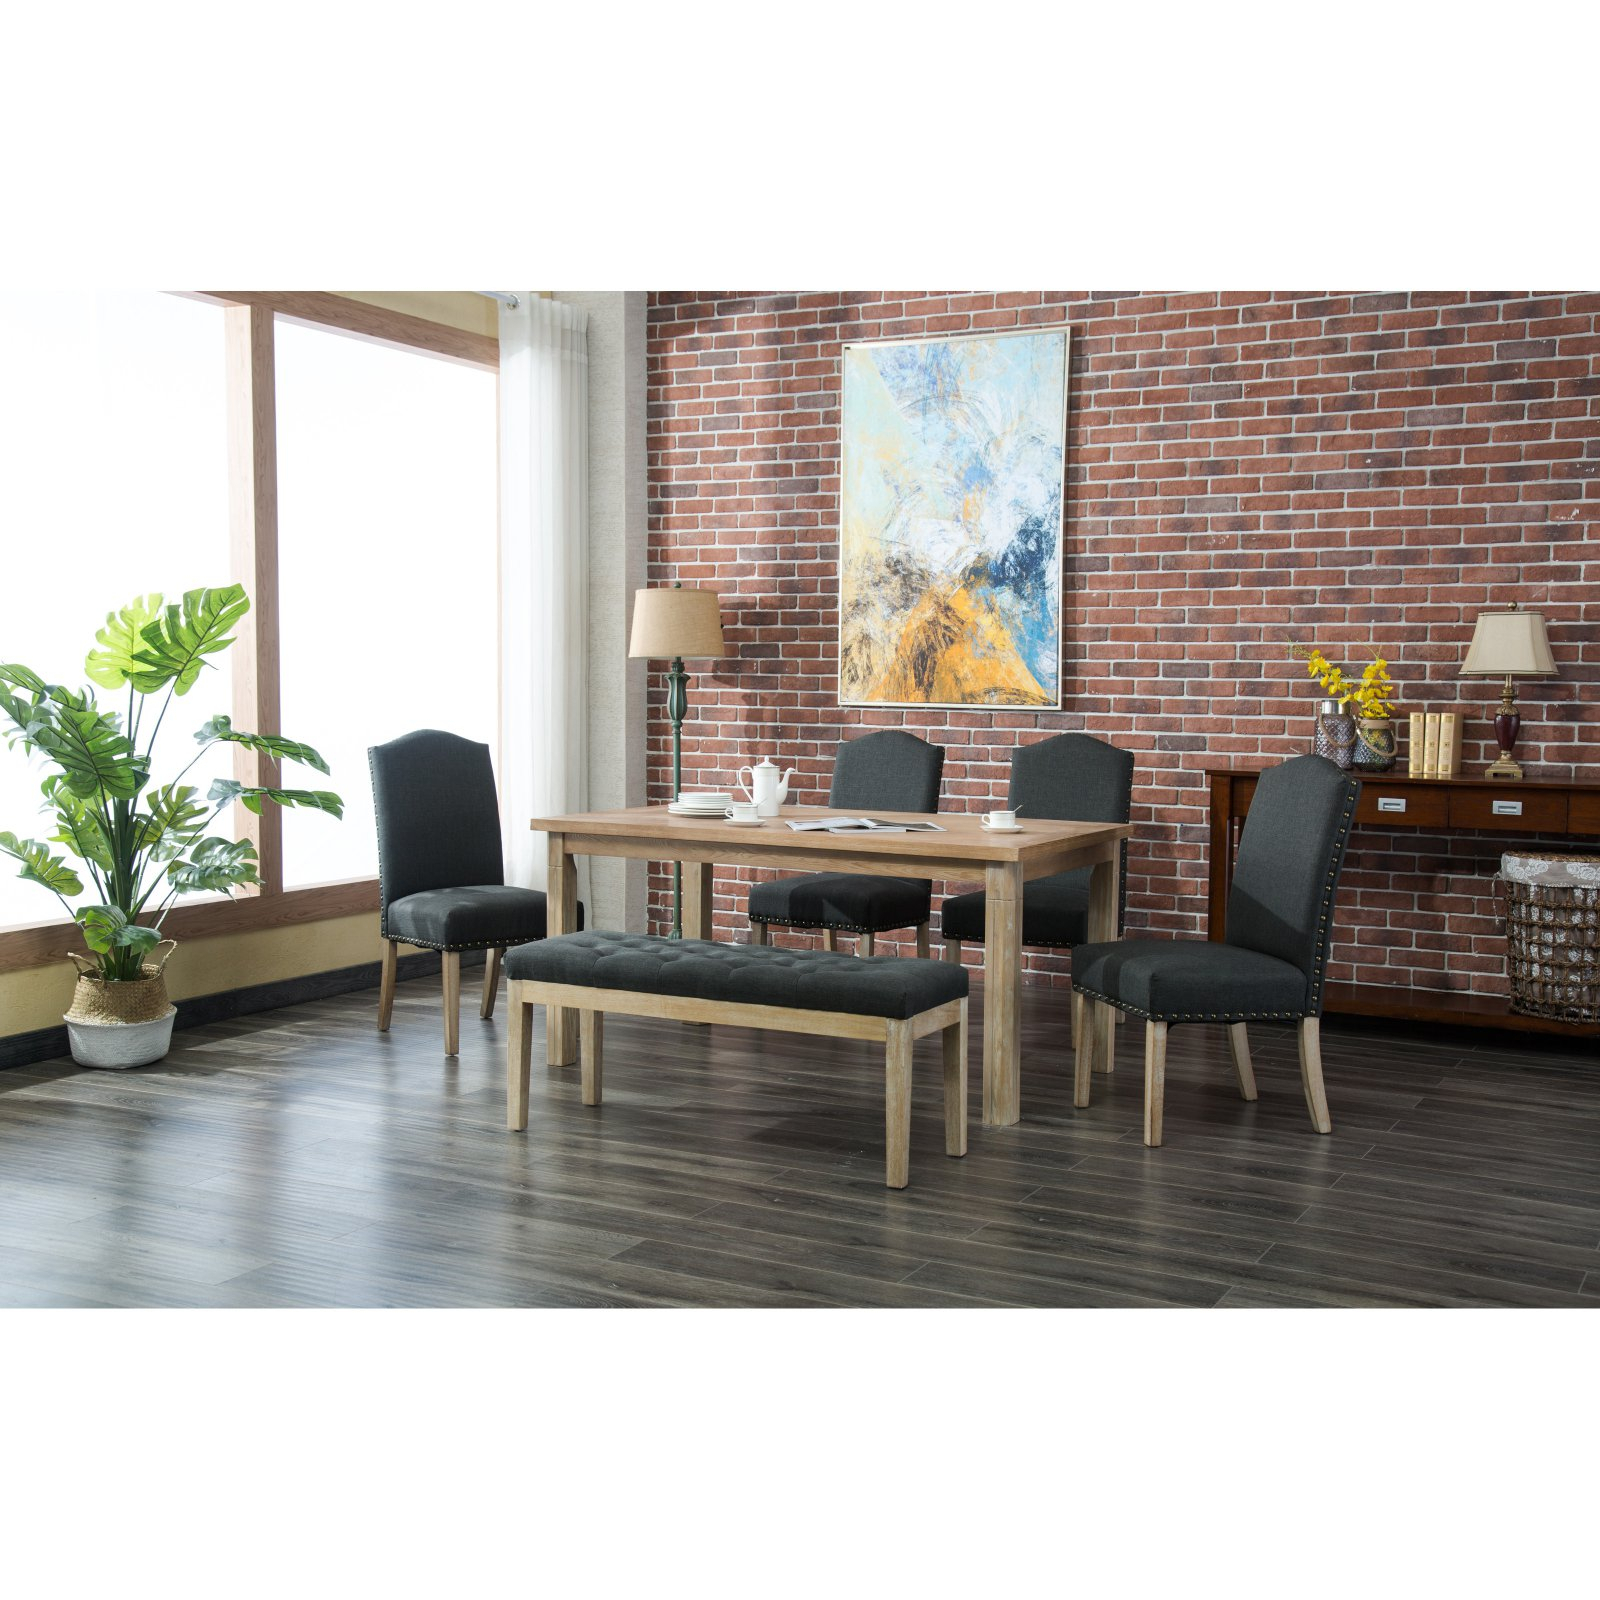 Roundhill Furniture Marseille 6 Piece Dining Table Set Charcoal Inside Most Recently Released Mukai 5 Piece Dining Sets (View 20 of 20)